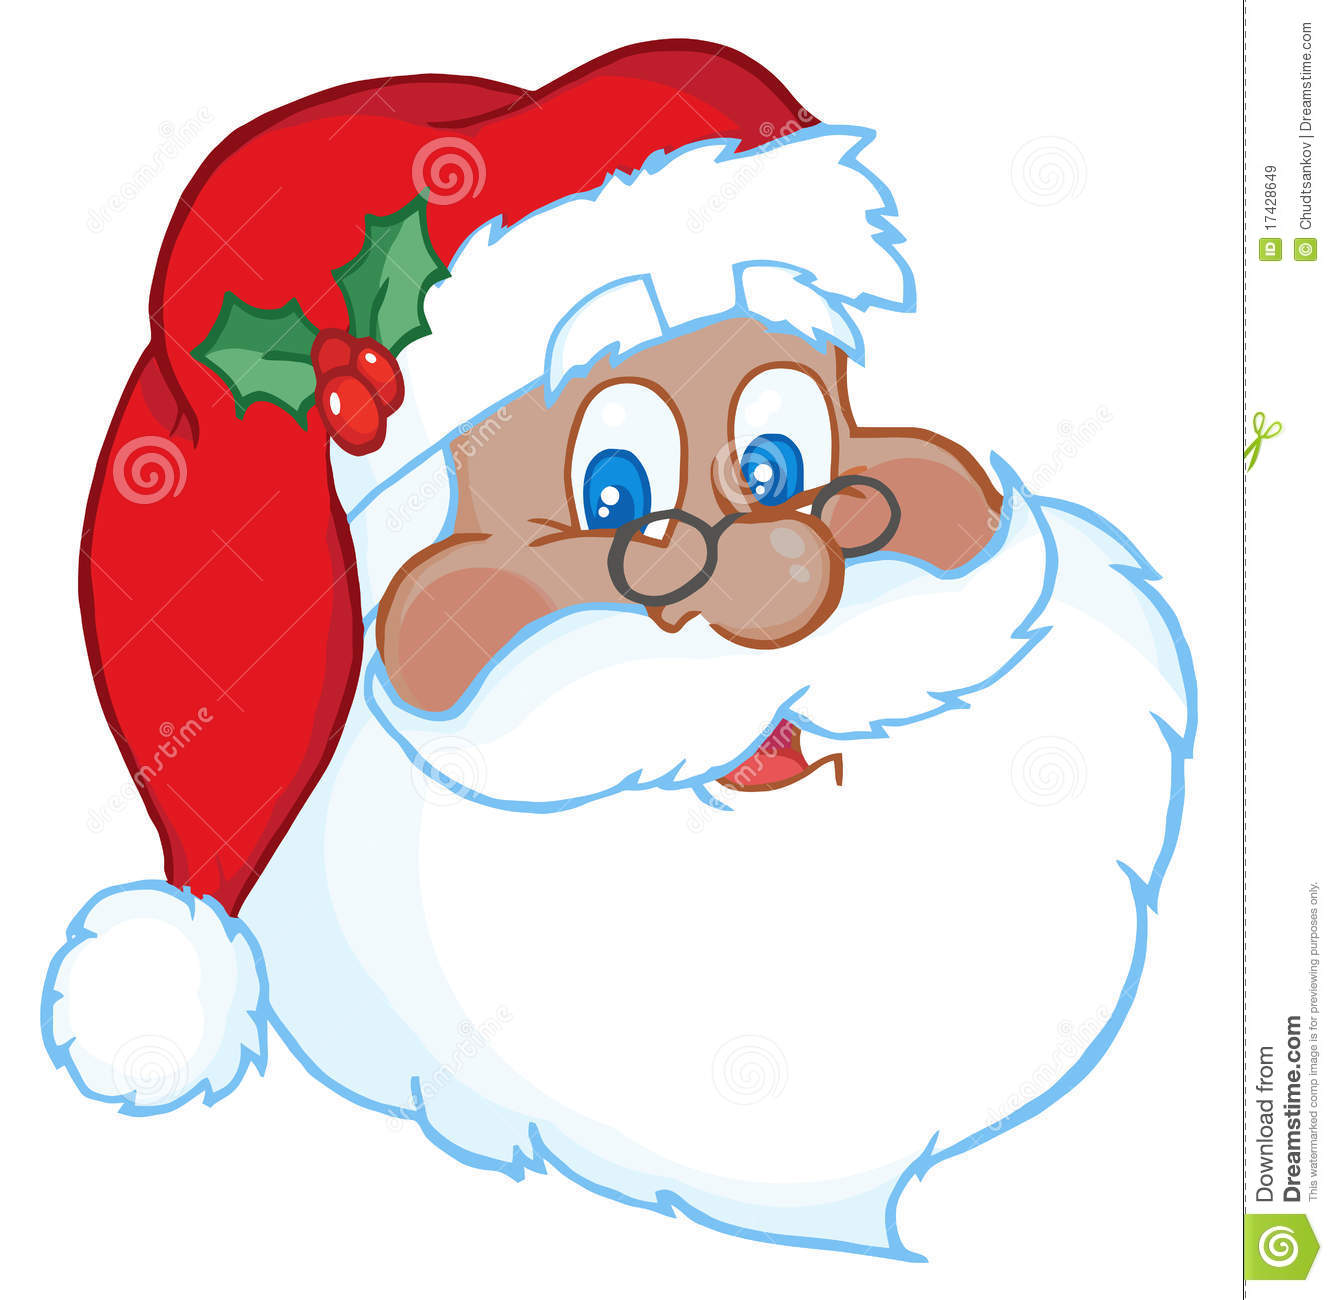 black santa face stock vector illustration of graphic 17428649 rh dreamstime com santa face clip art black and white cartoon santa face clip art